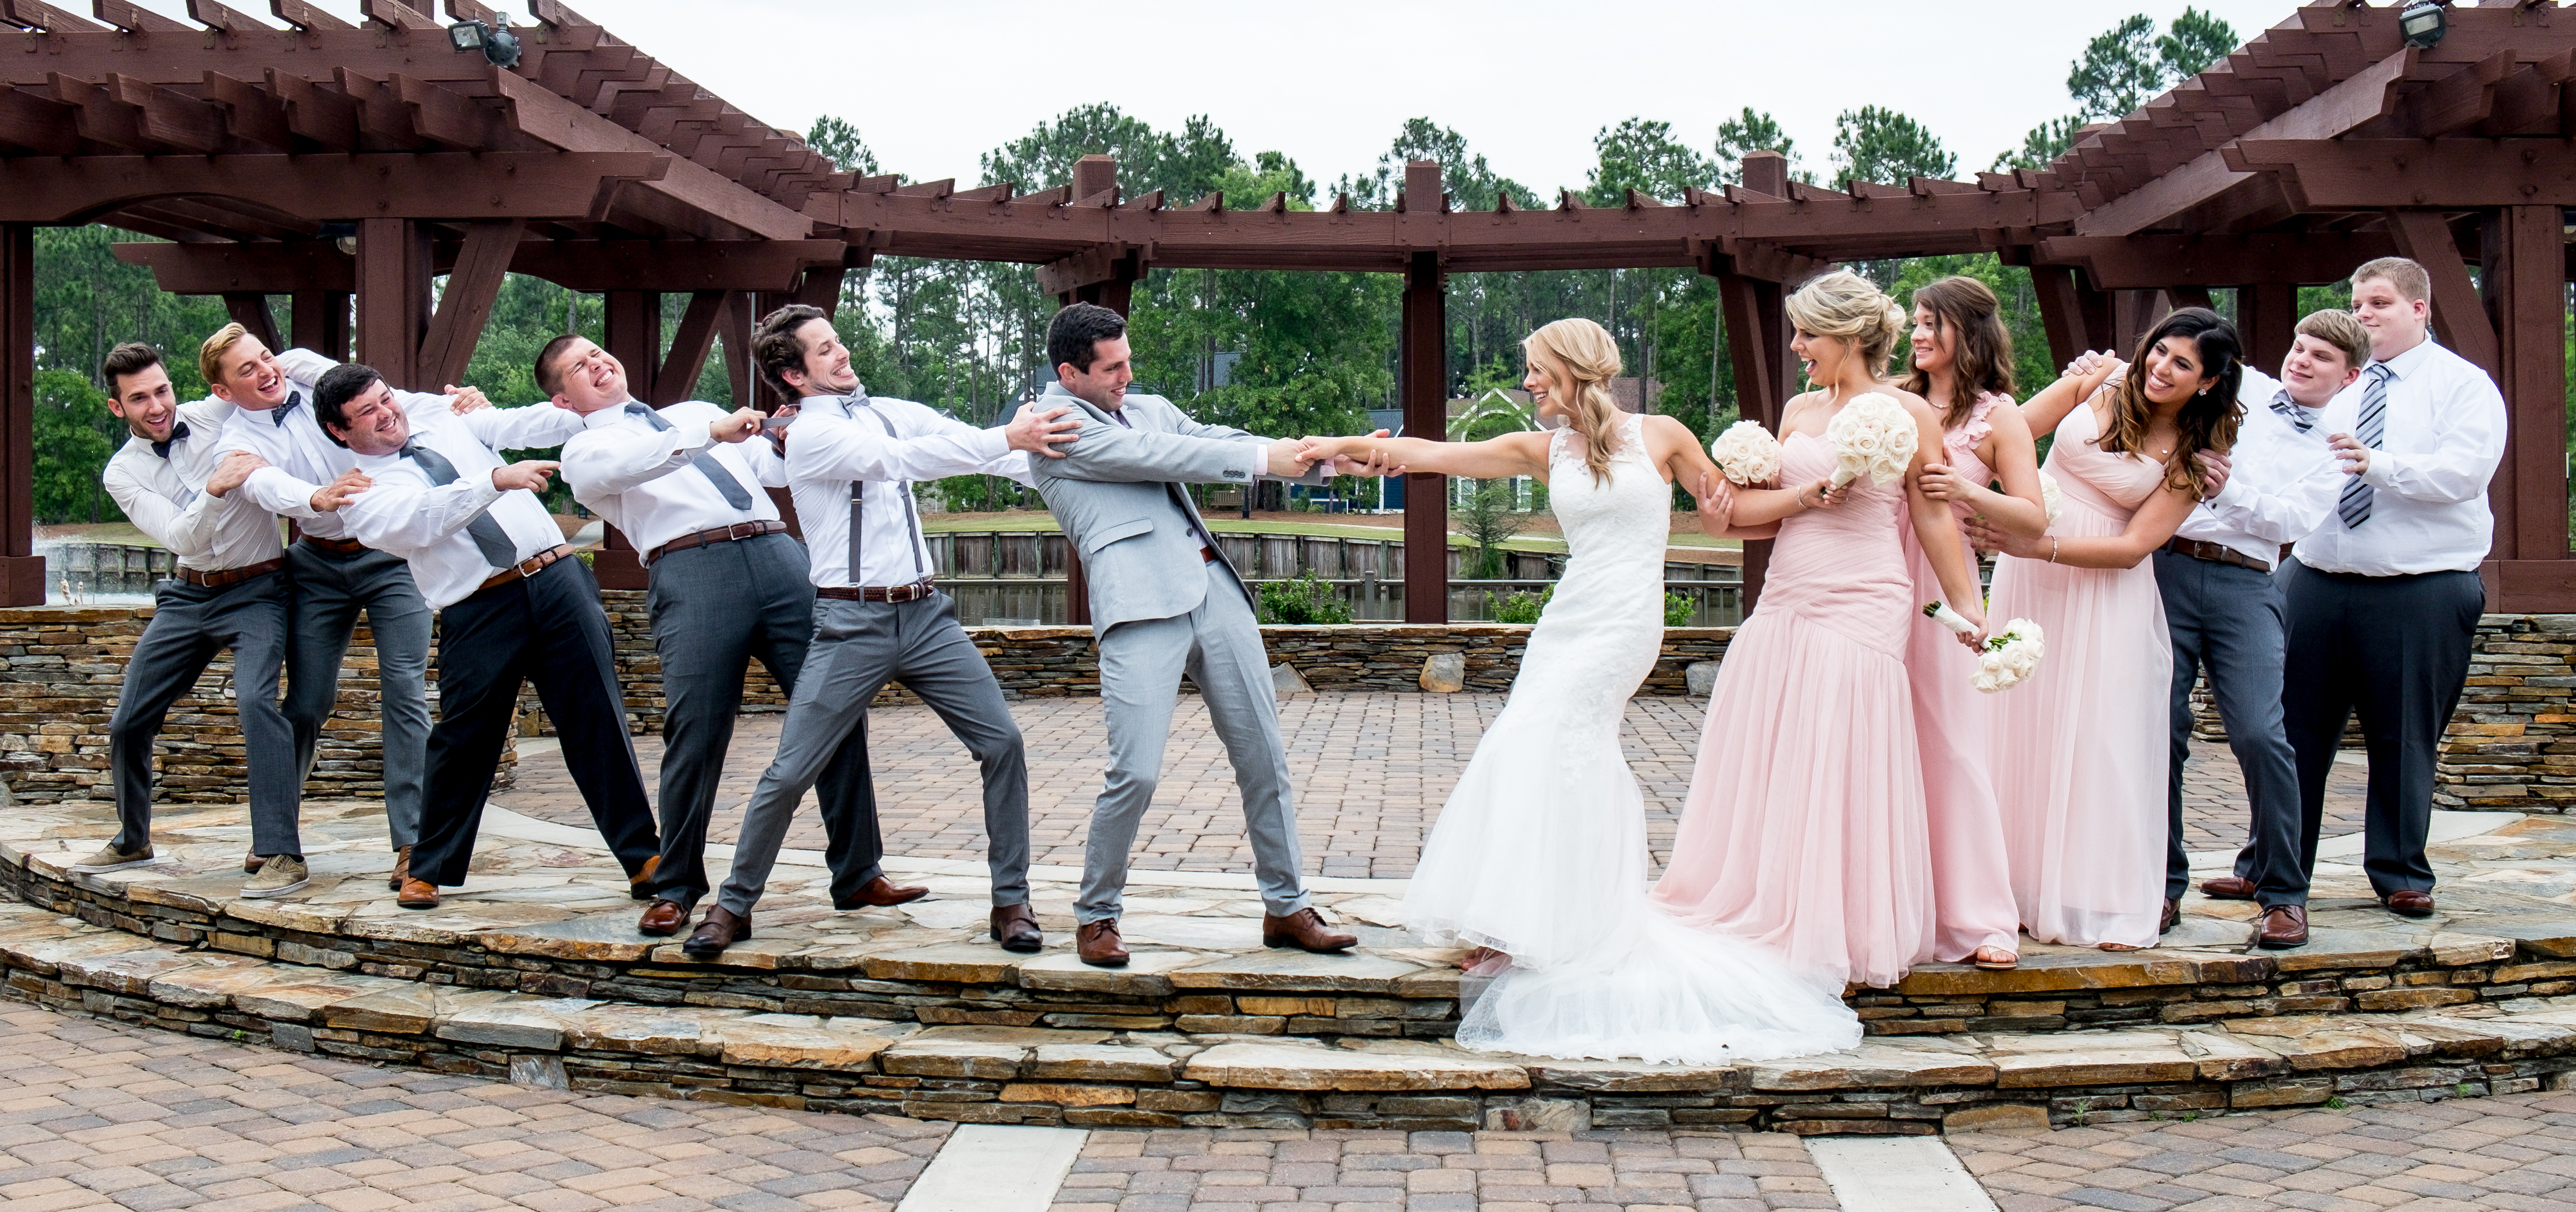 Bridesmaids and groomsmen playfully pretending to pull the bride and groom apart. Photo taken by Pait Photography, at a wedding at St. James Plantation, in St. James, NC.